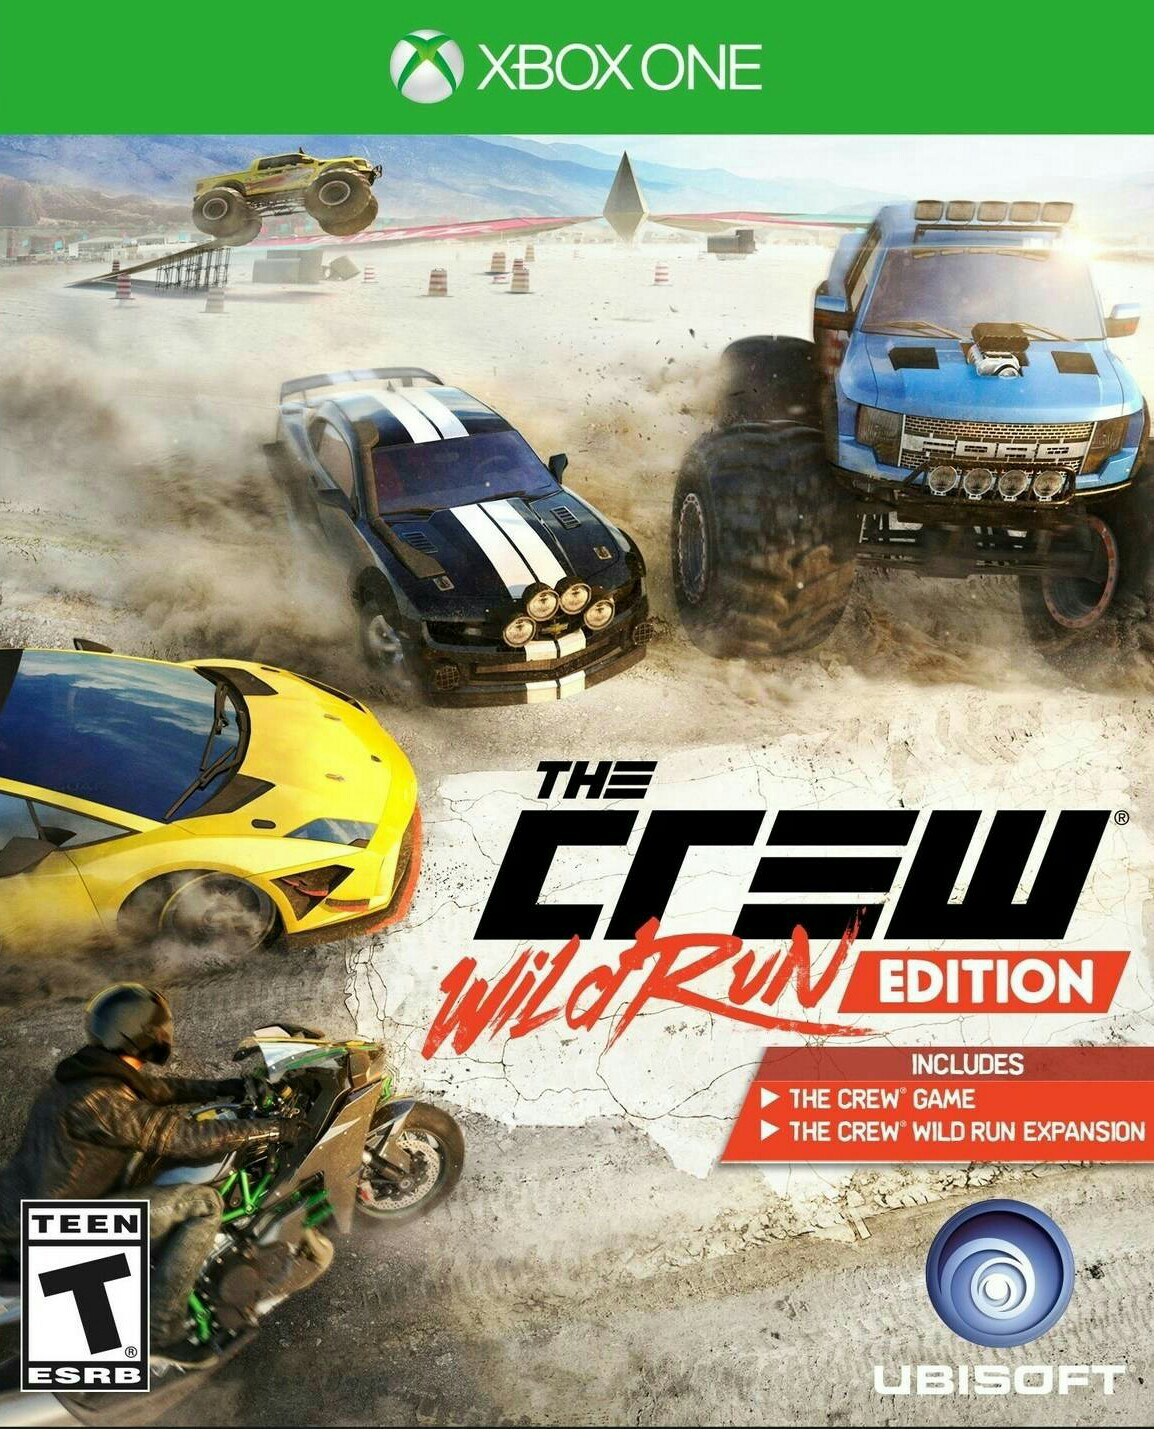 The Crew Xbox One : buy code the crew wild run edition xbox one and download ~ Aude.kayakingforconservation.com Haus und Dekorationen